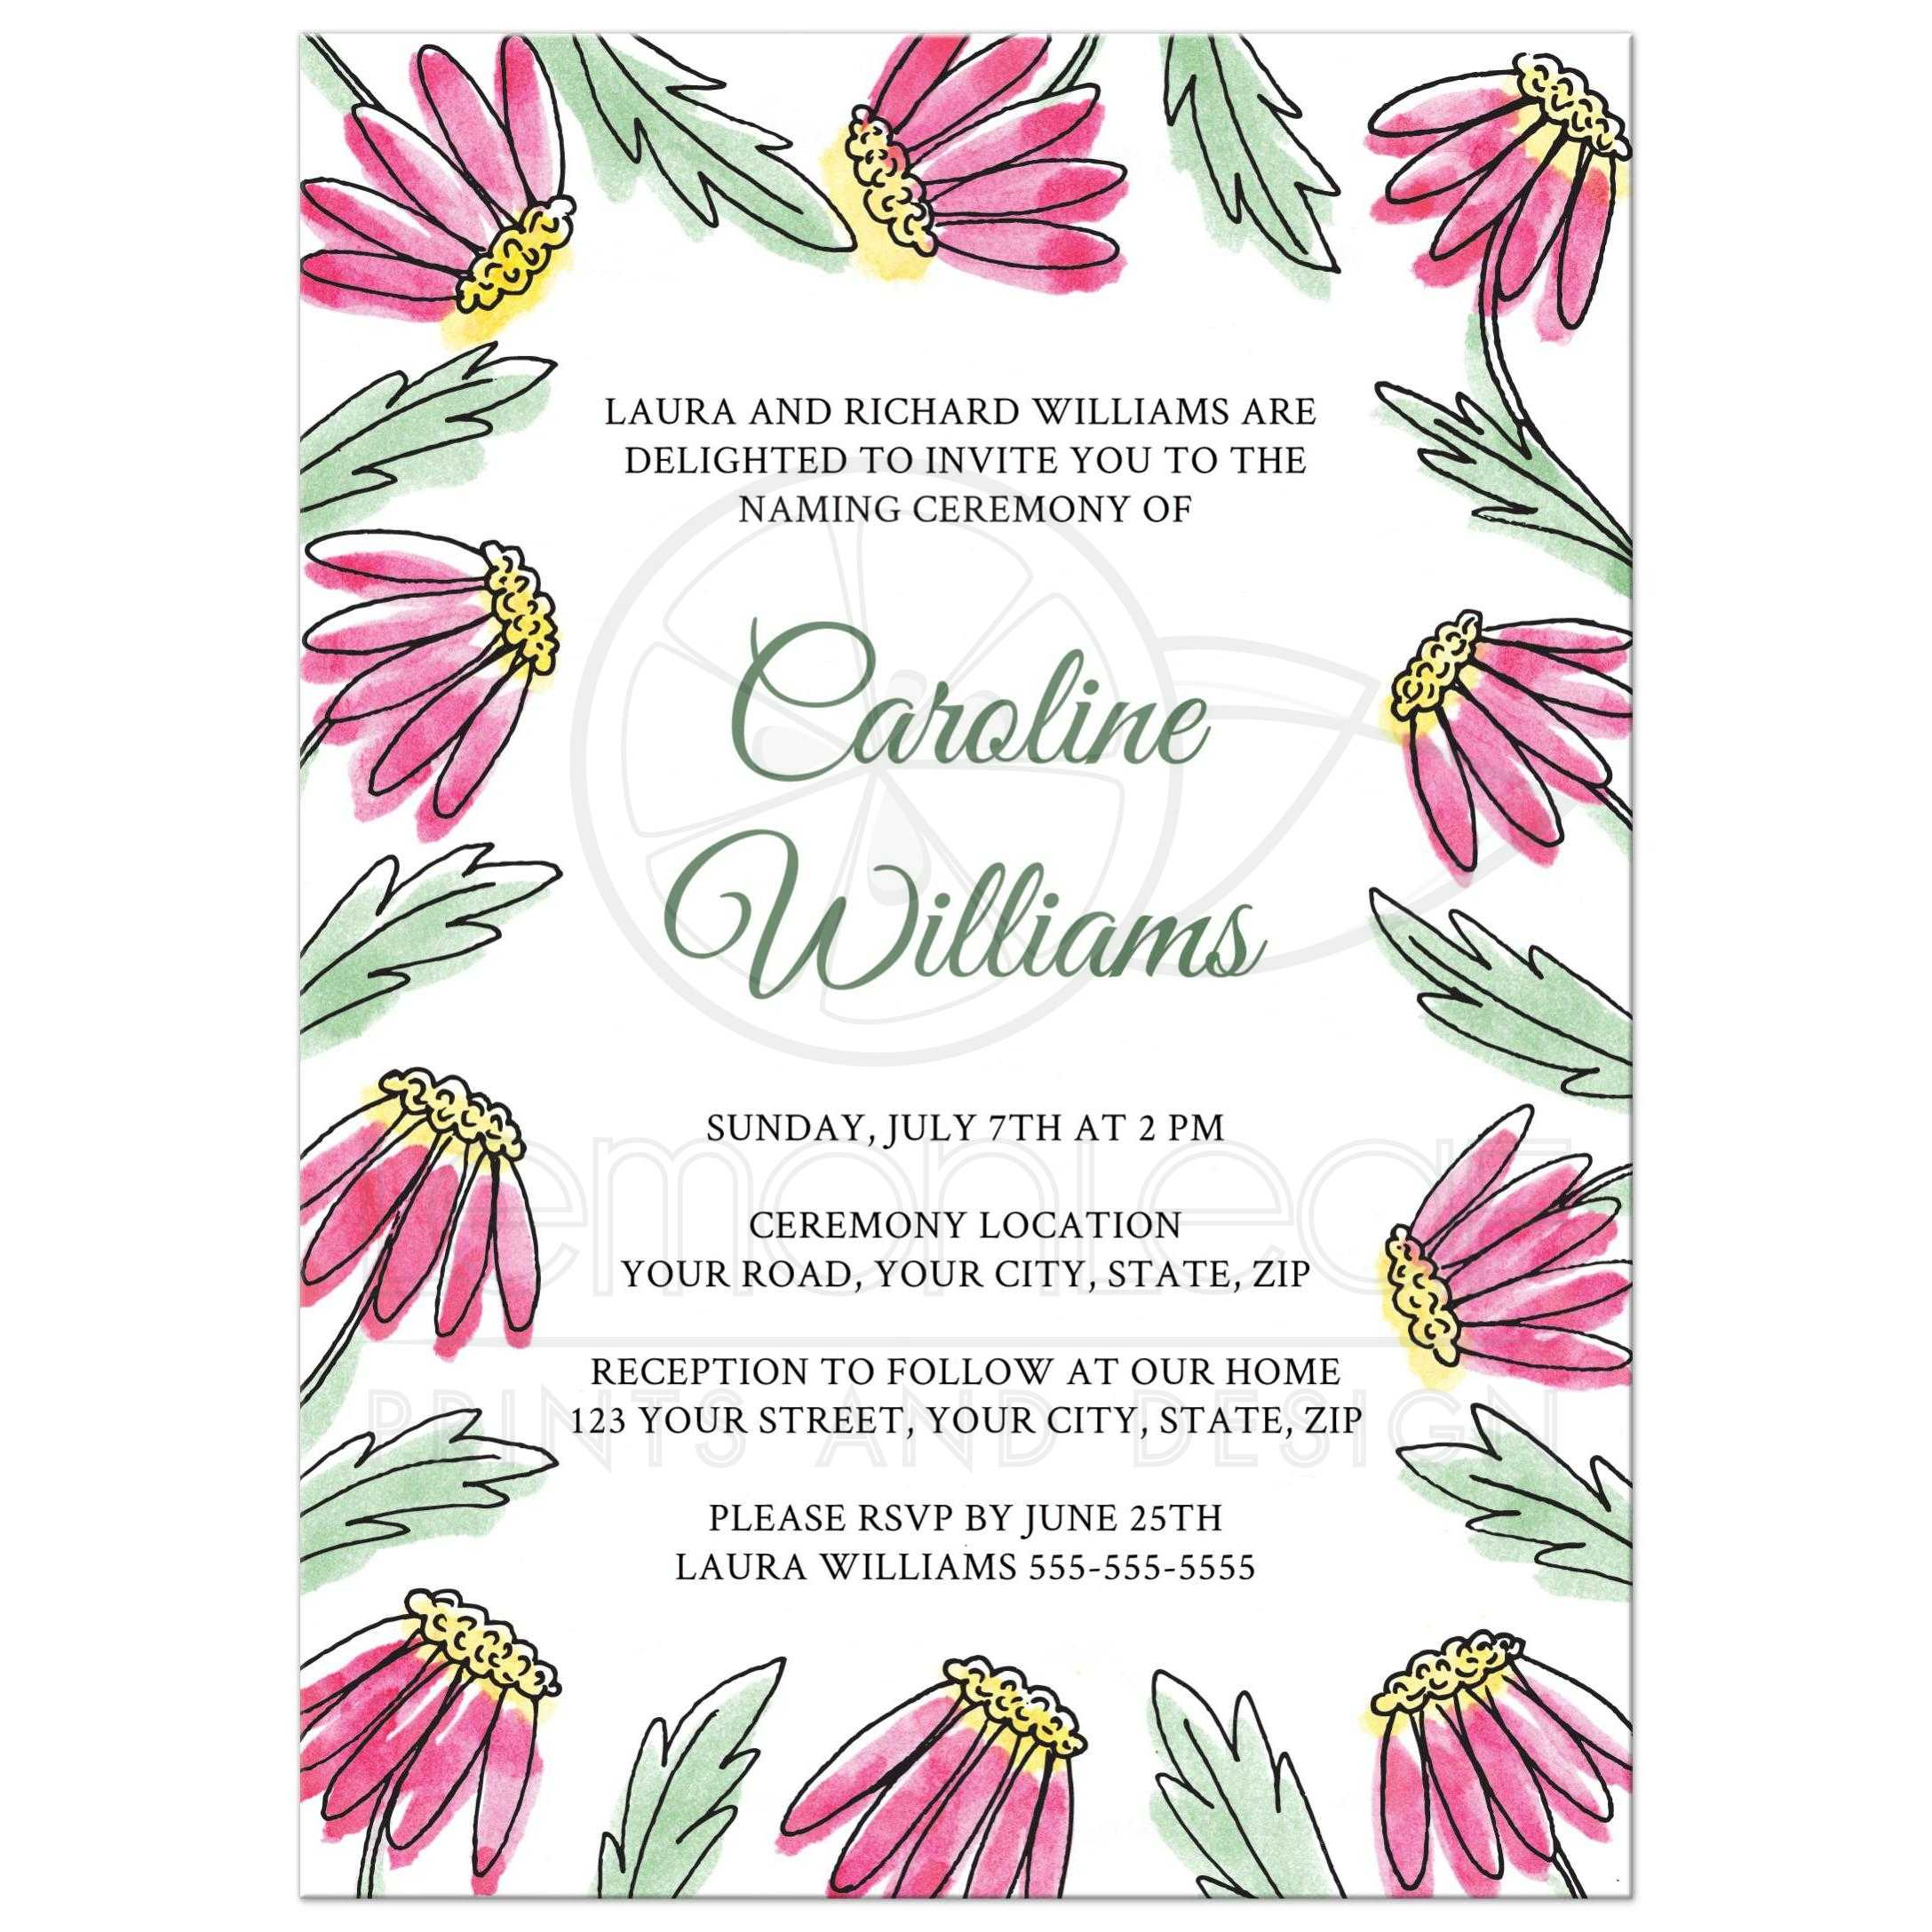 Quinceanera Invitations with nice invitation example